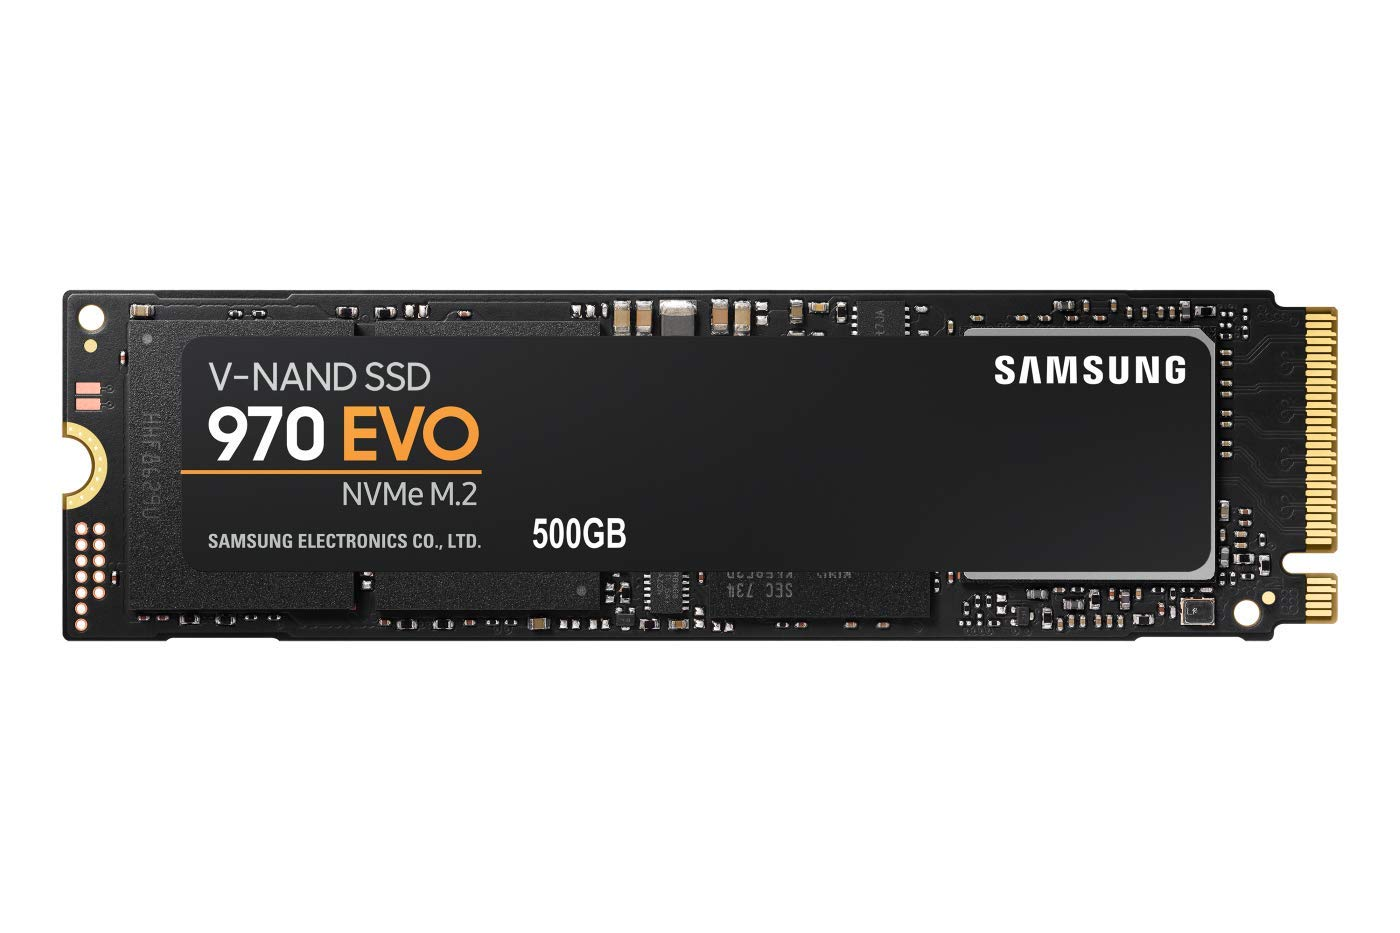 Samsung 970 EVO SSD amazon